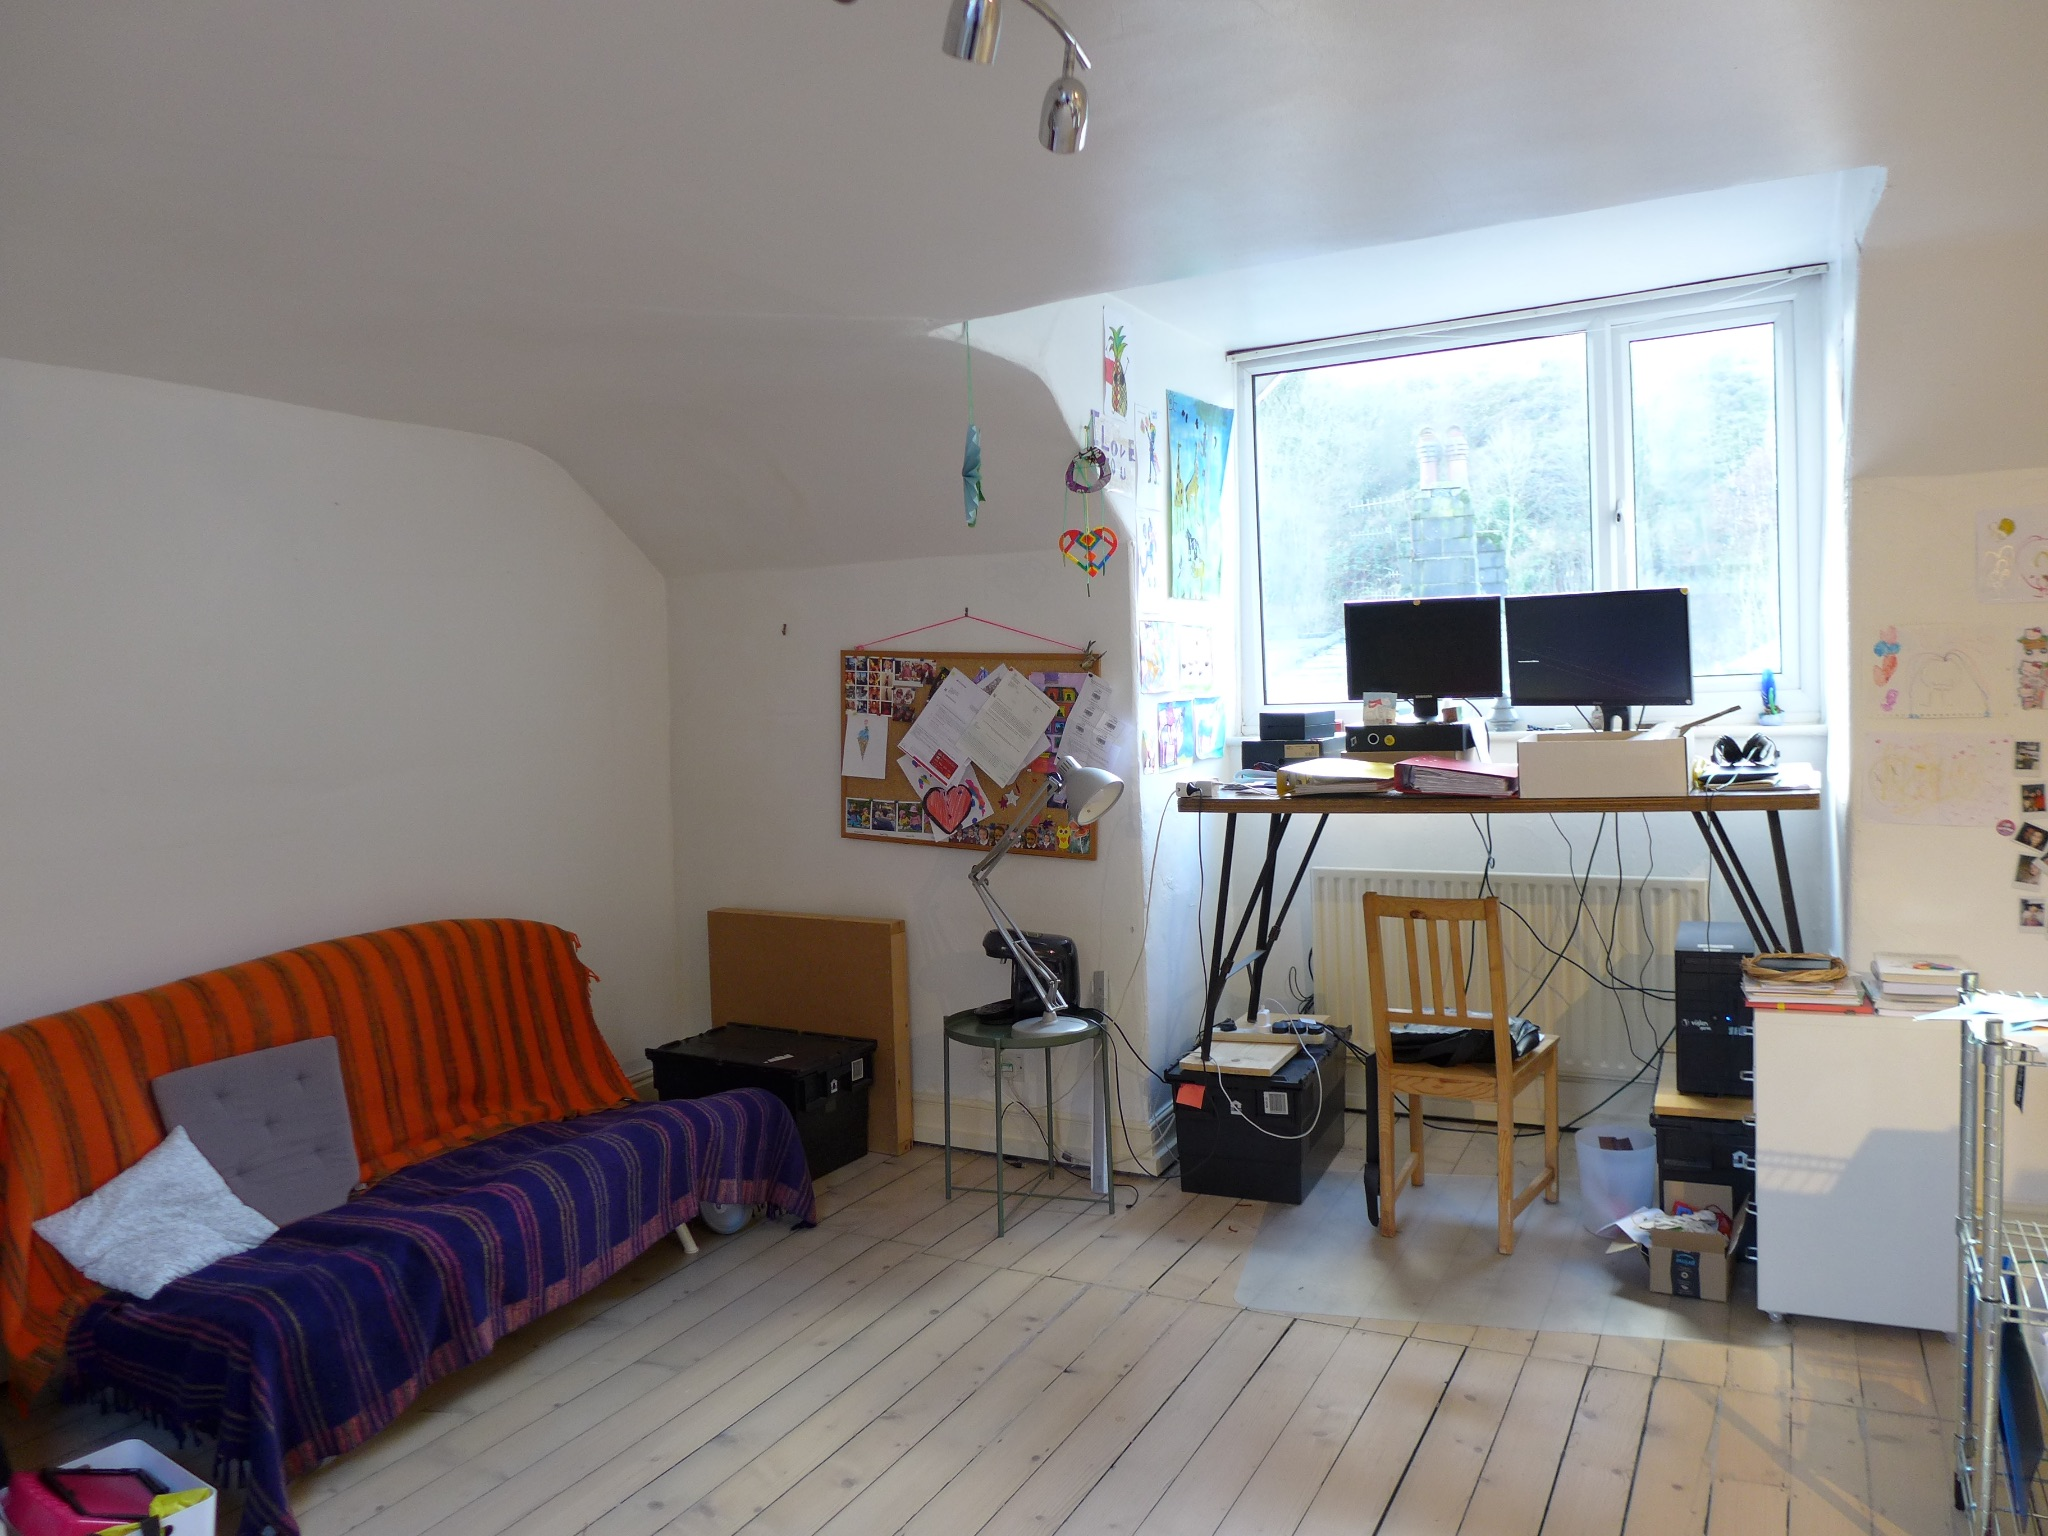 4 bedroom end terraced house For Sale in Calderdale - Photograph 22.